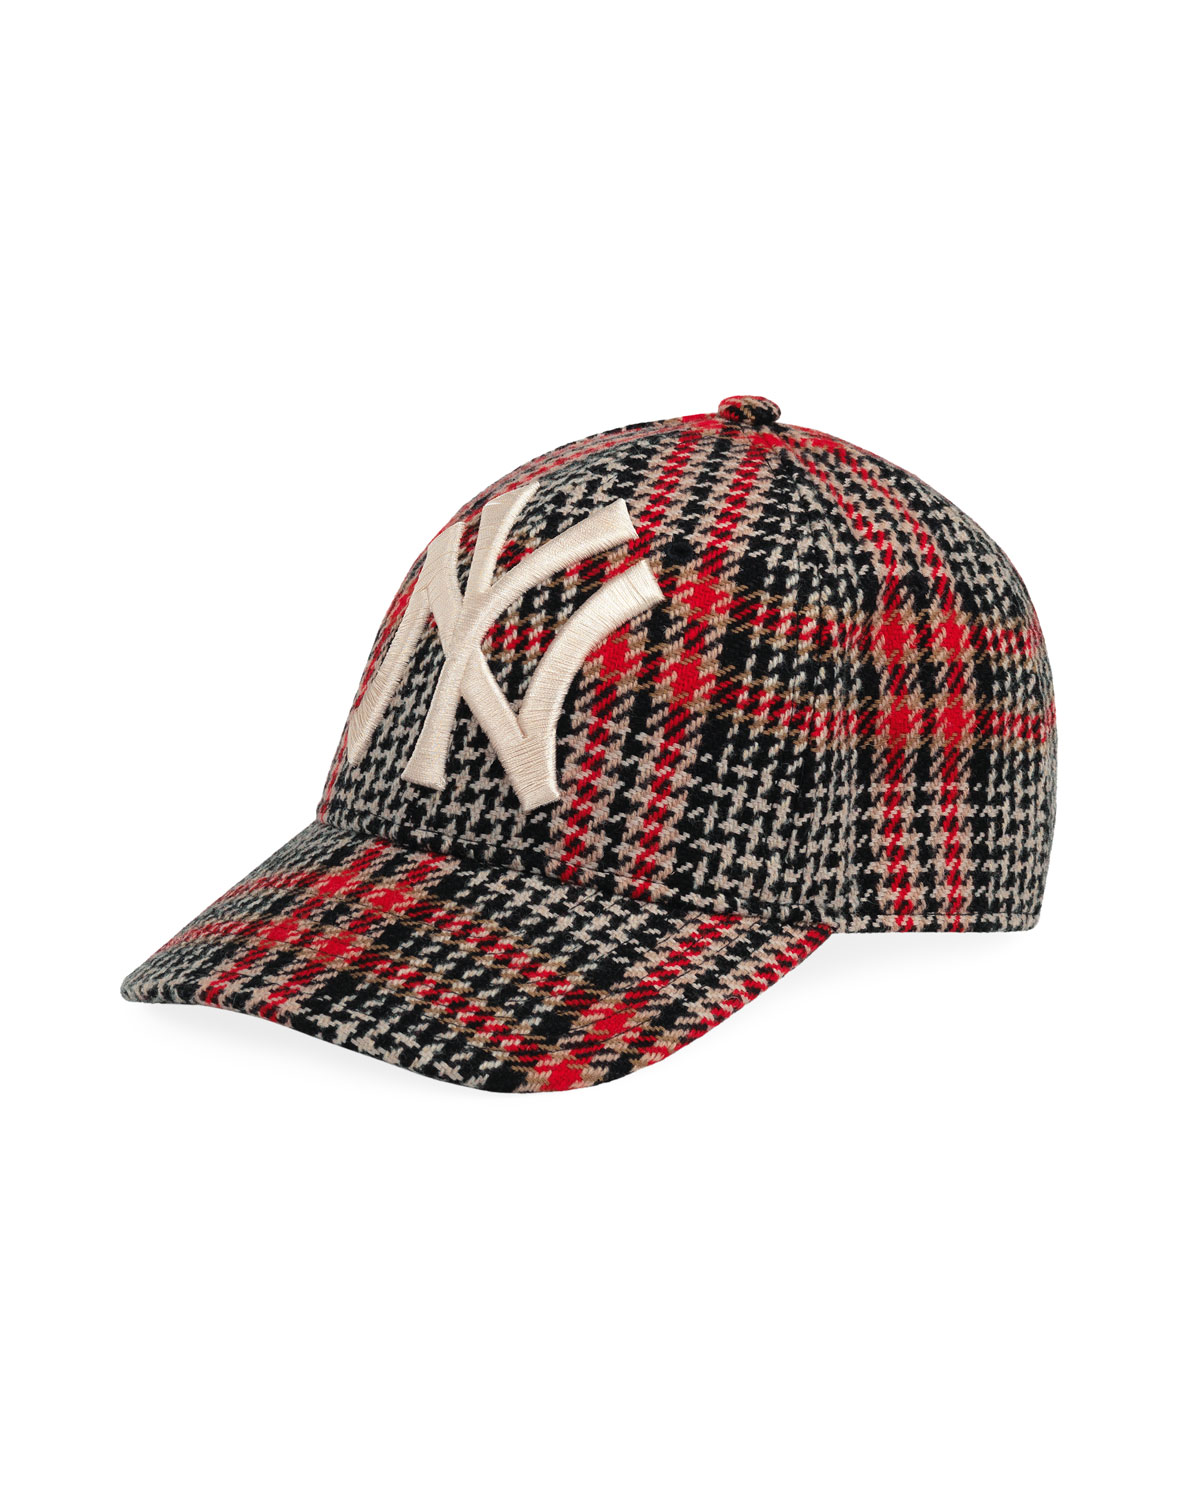 Gucci Men s Houndstooth Baseball Cap with NY Yankees Applique ... f9f2ad5932a